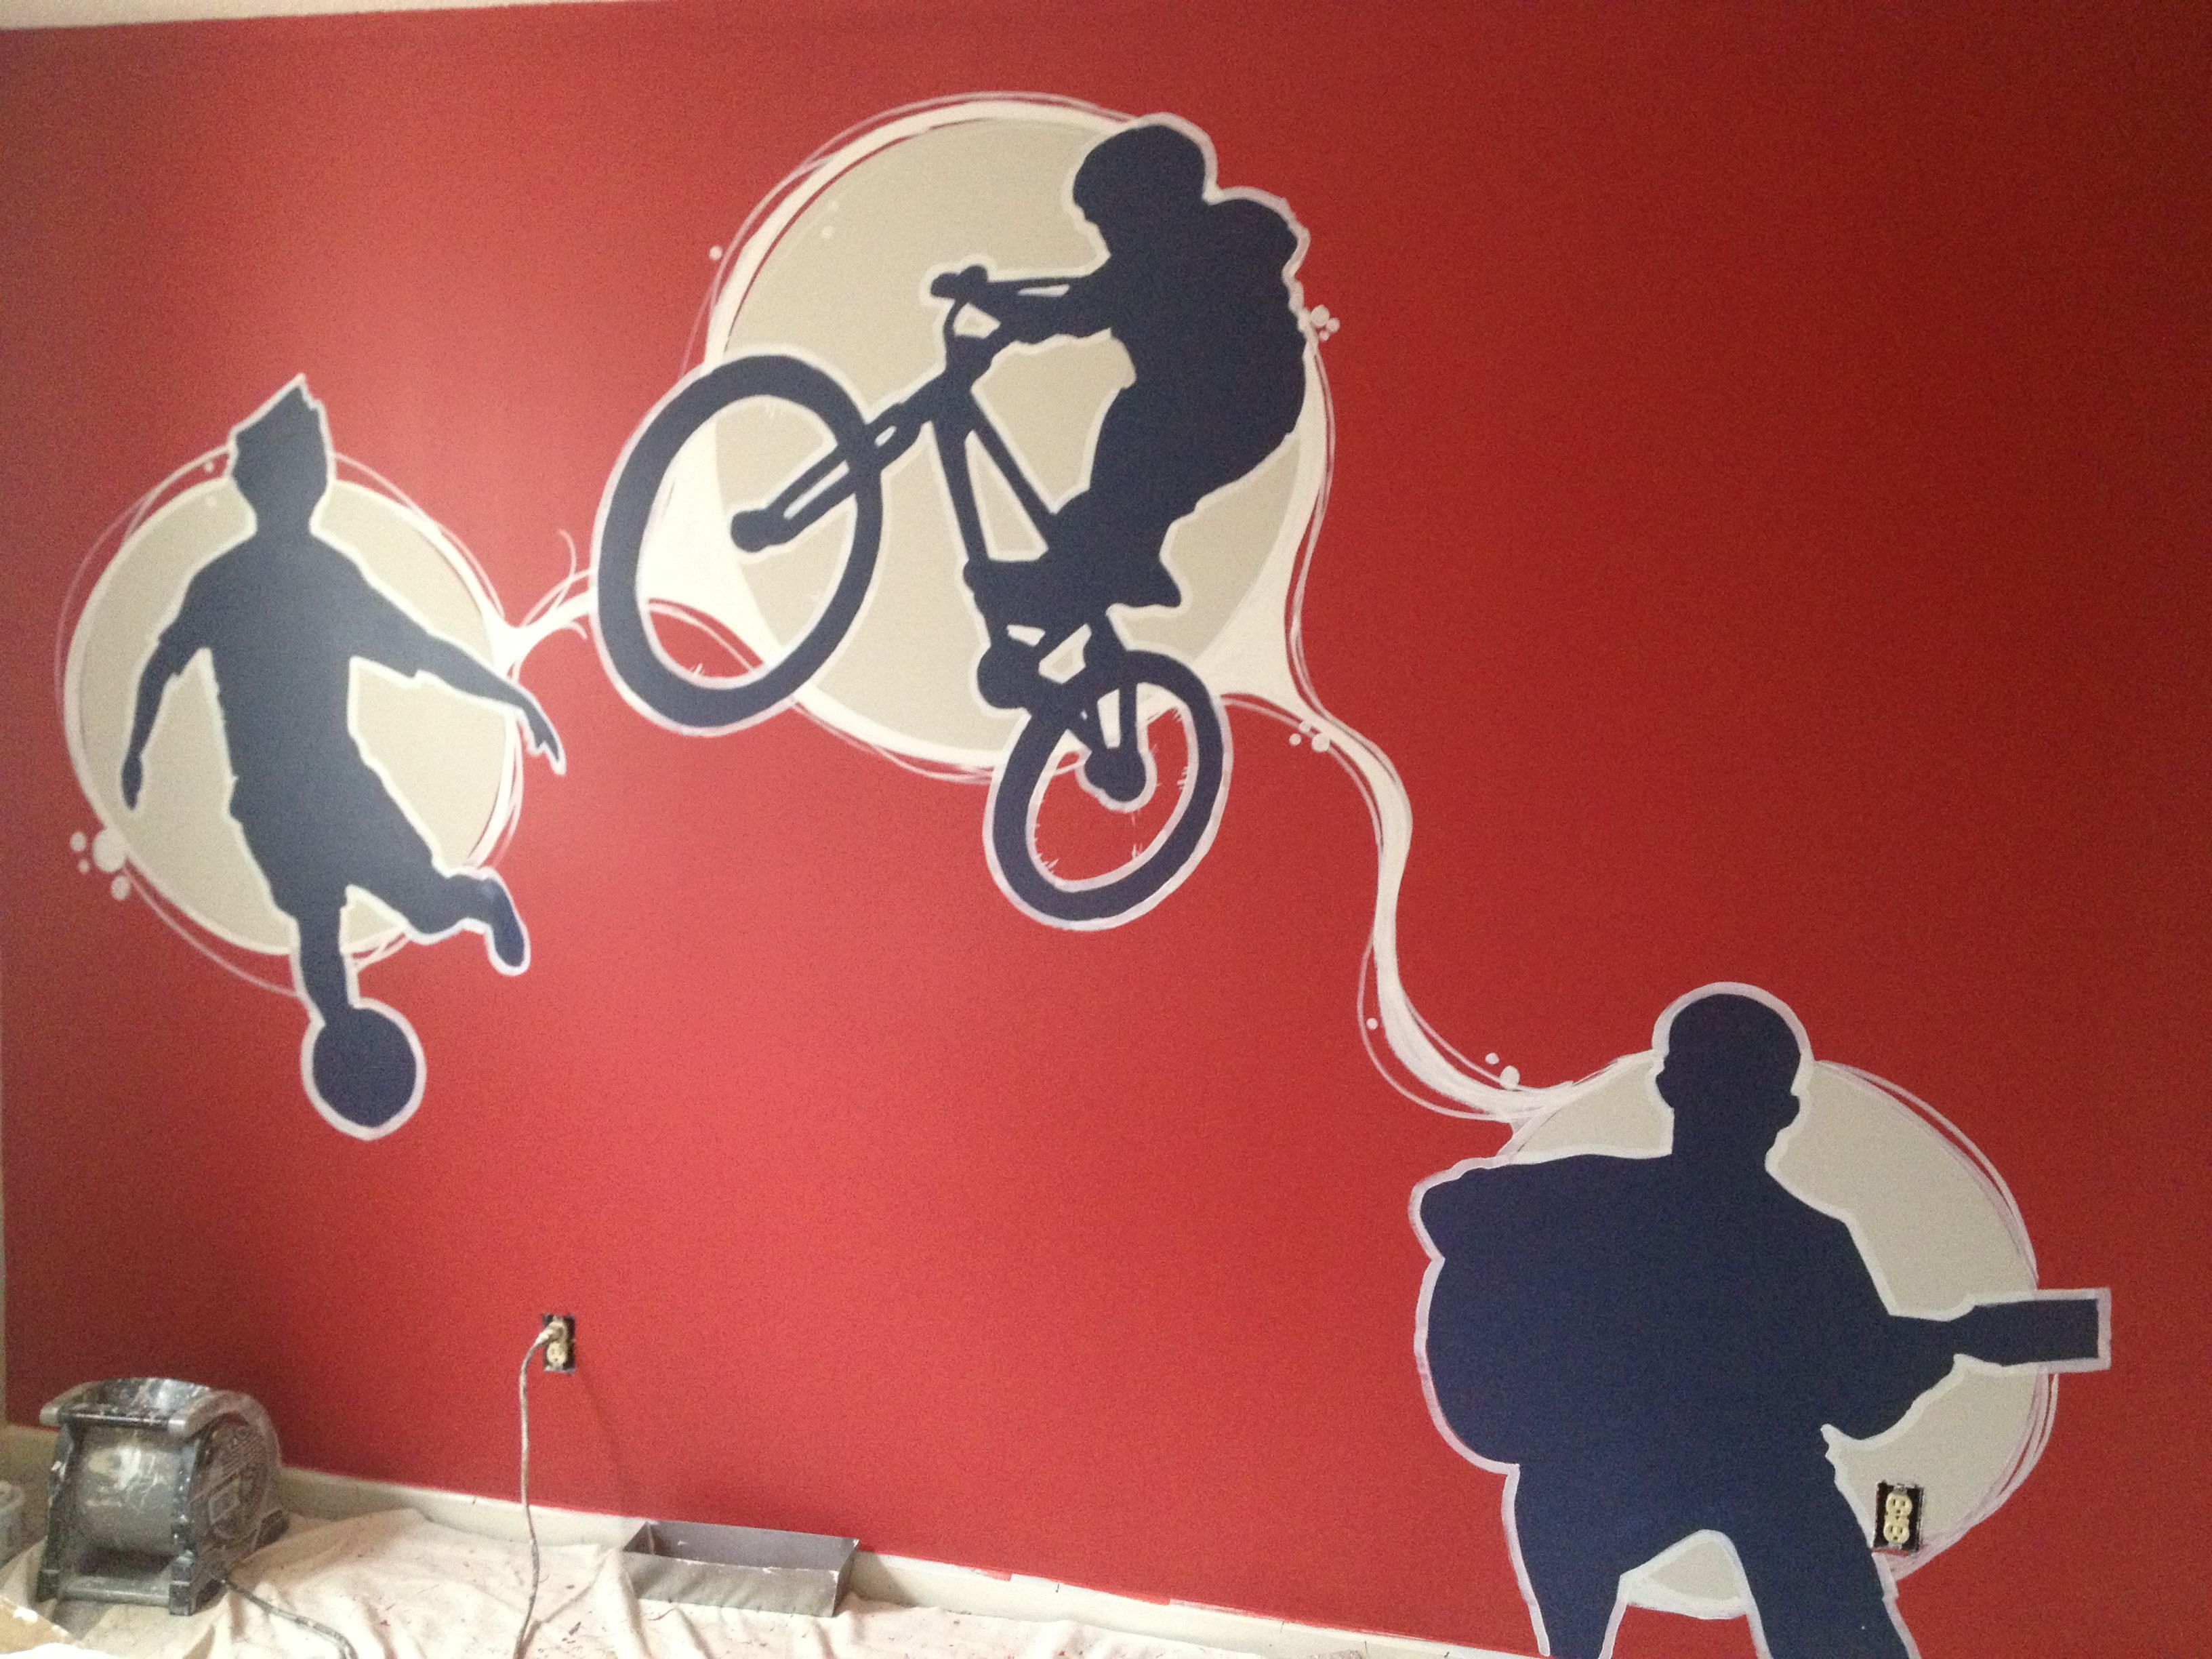 99 best kids bedroom ideas images on pinterest bedroom ideas boys sports mural this kids bedroom idea was inspired by the sports he played so dirt bike